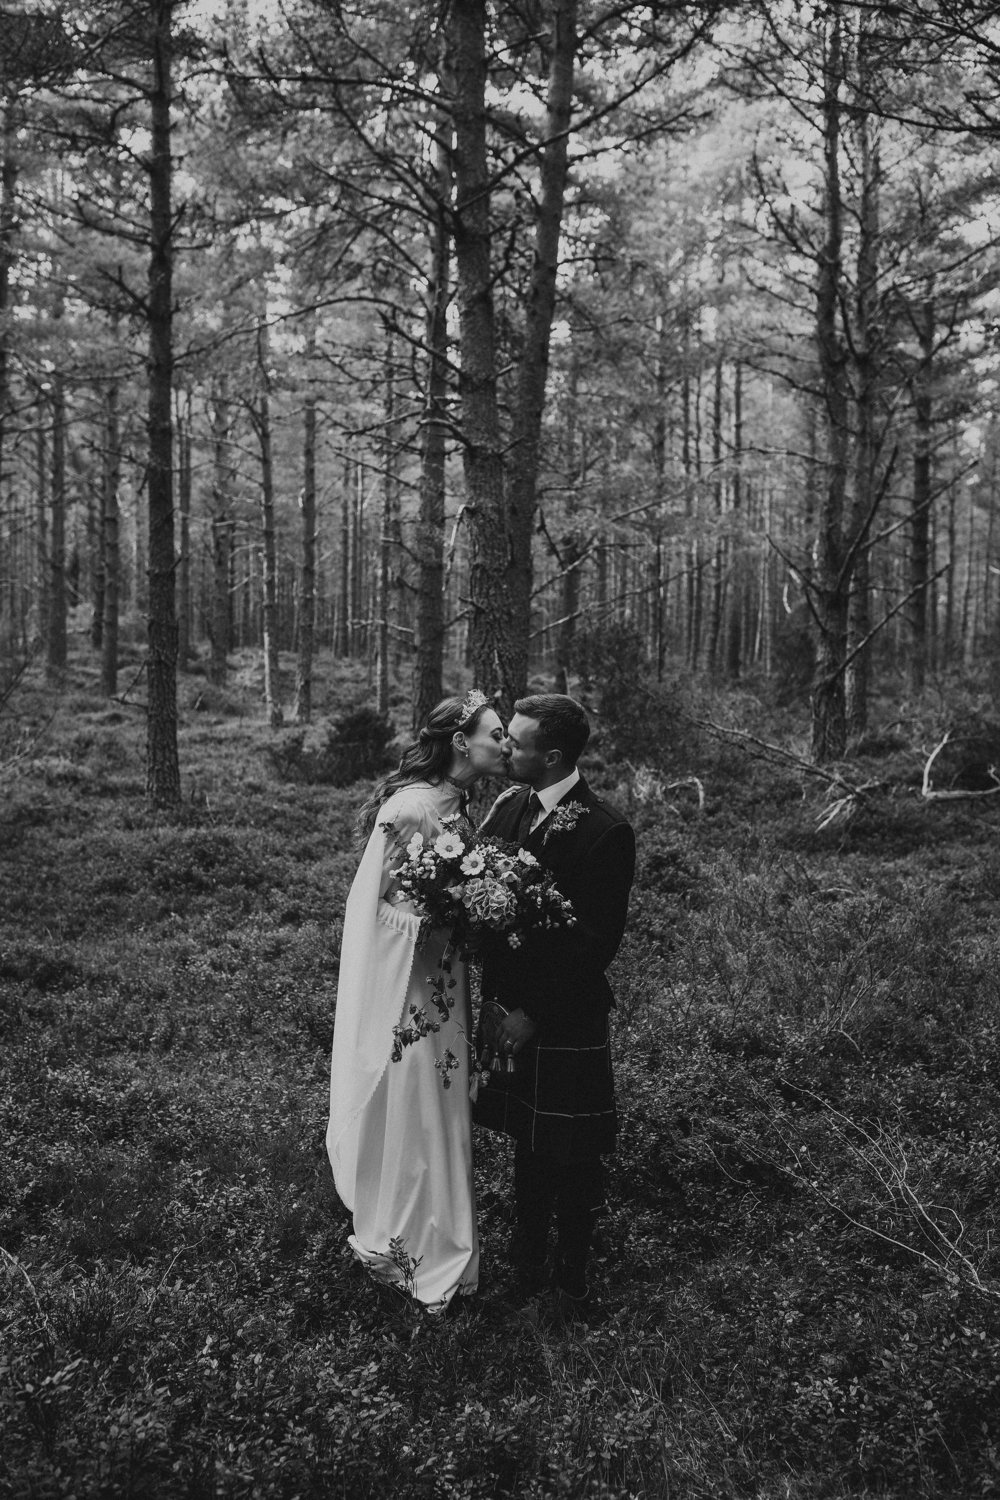 LOCH_GARTEN_DIY_WEDDING_PJ_PHILLIPS_PHOTOGRAPHY_143.jpg